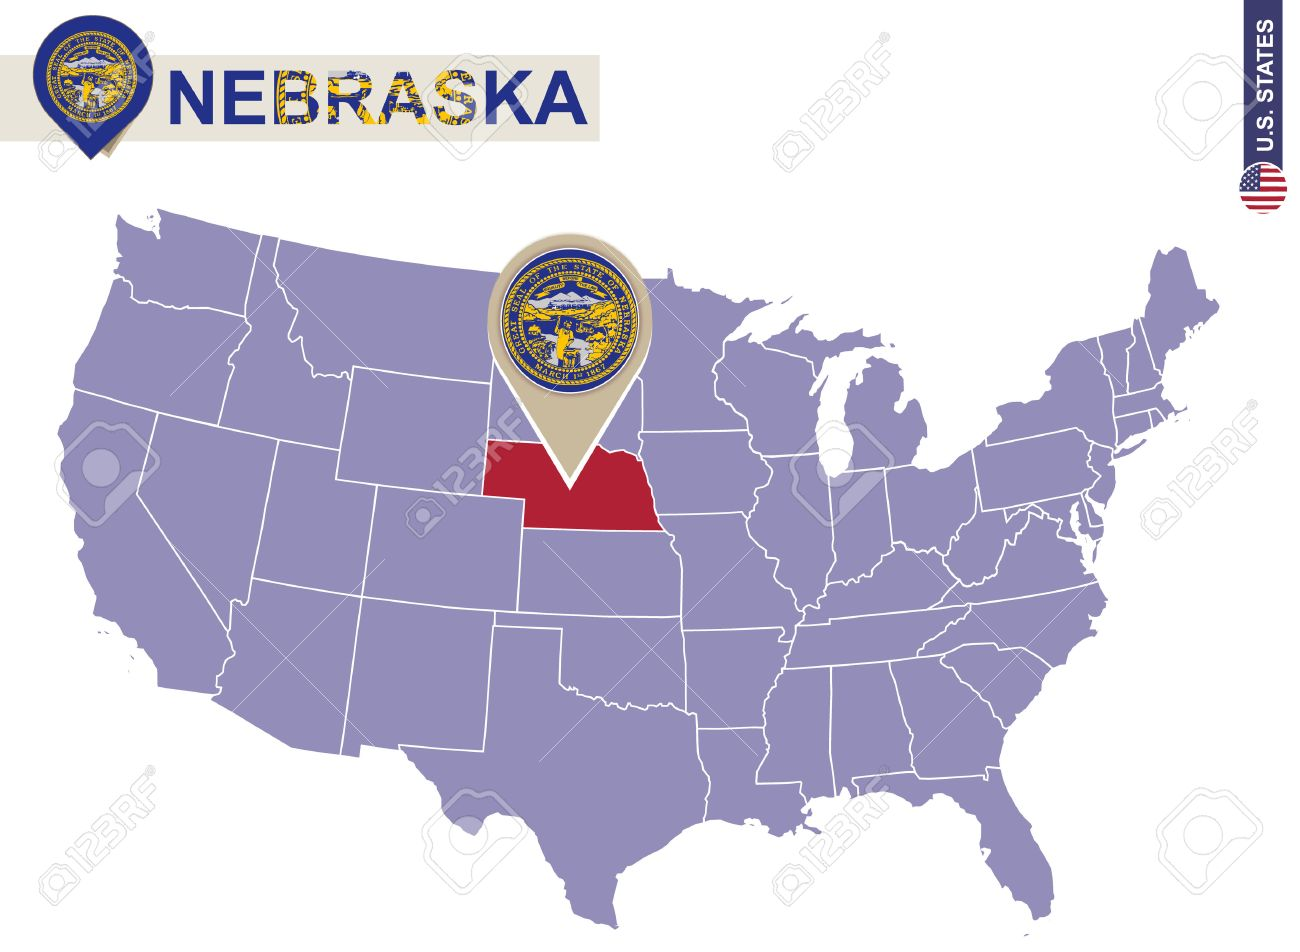 Nebraska State On USA Map Nebraska Flag And Map US States - Nebraska on a us map